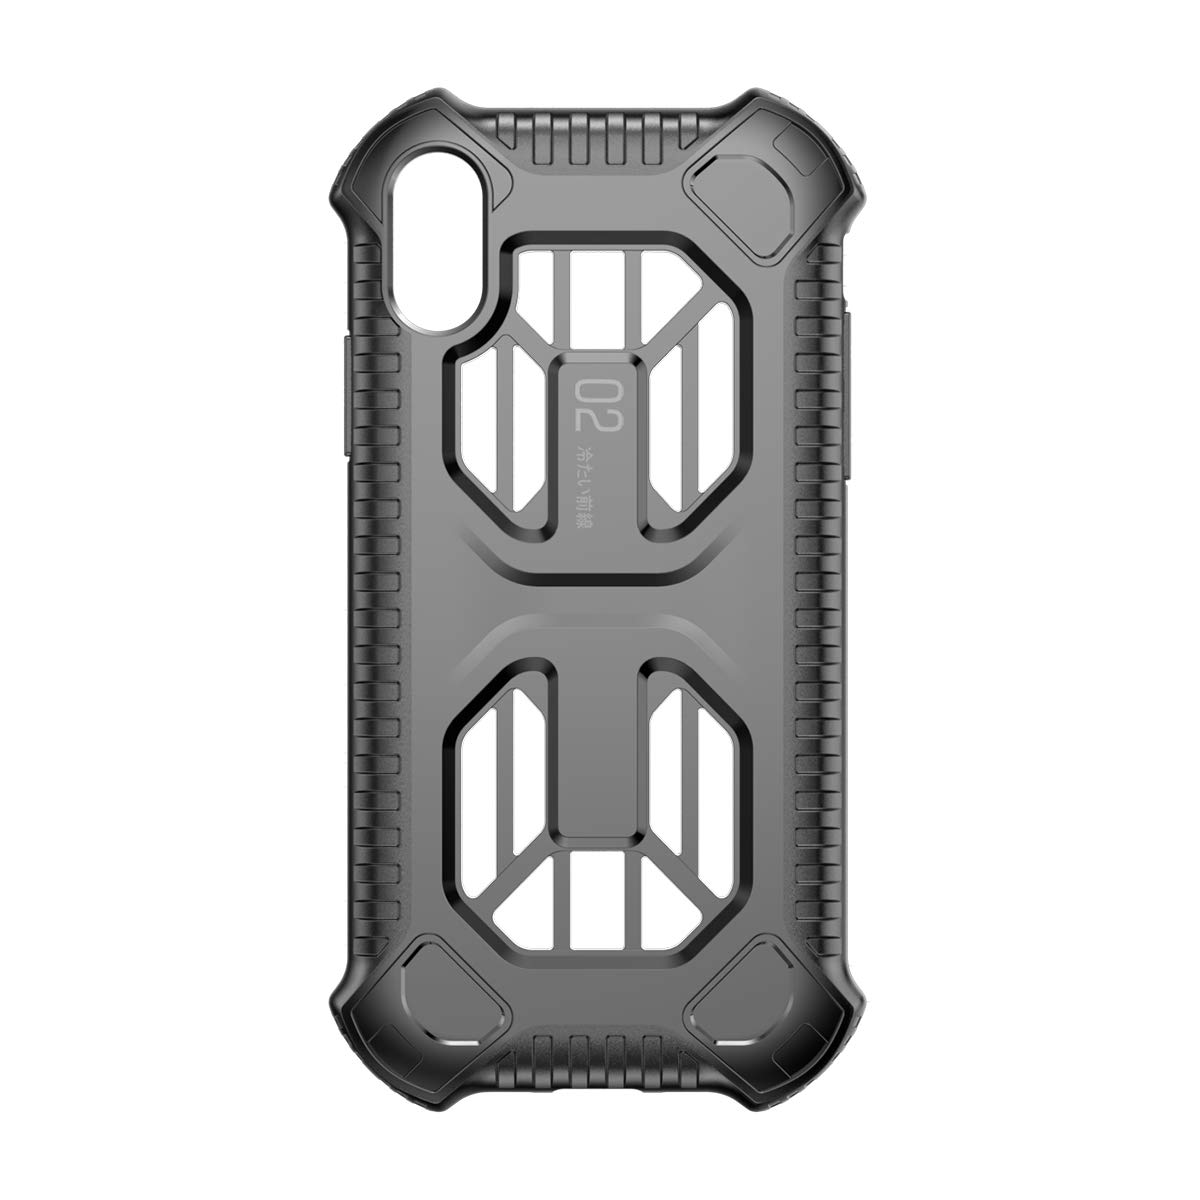 iPhone XR Case, Baseus Full-Body Rugged Shock Reduction Protective Cover for iPhone XR 6.1 Inch (Black)